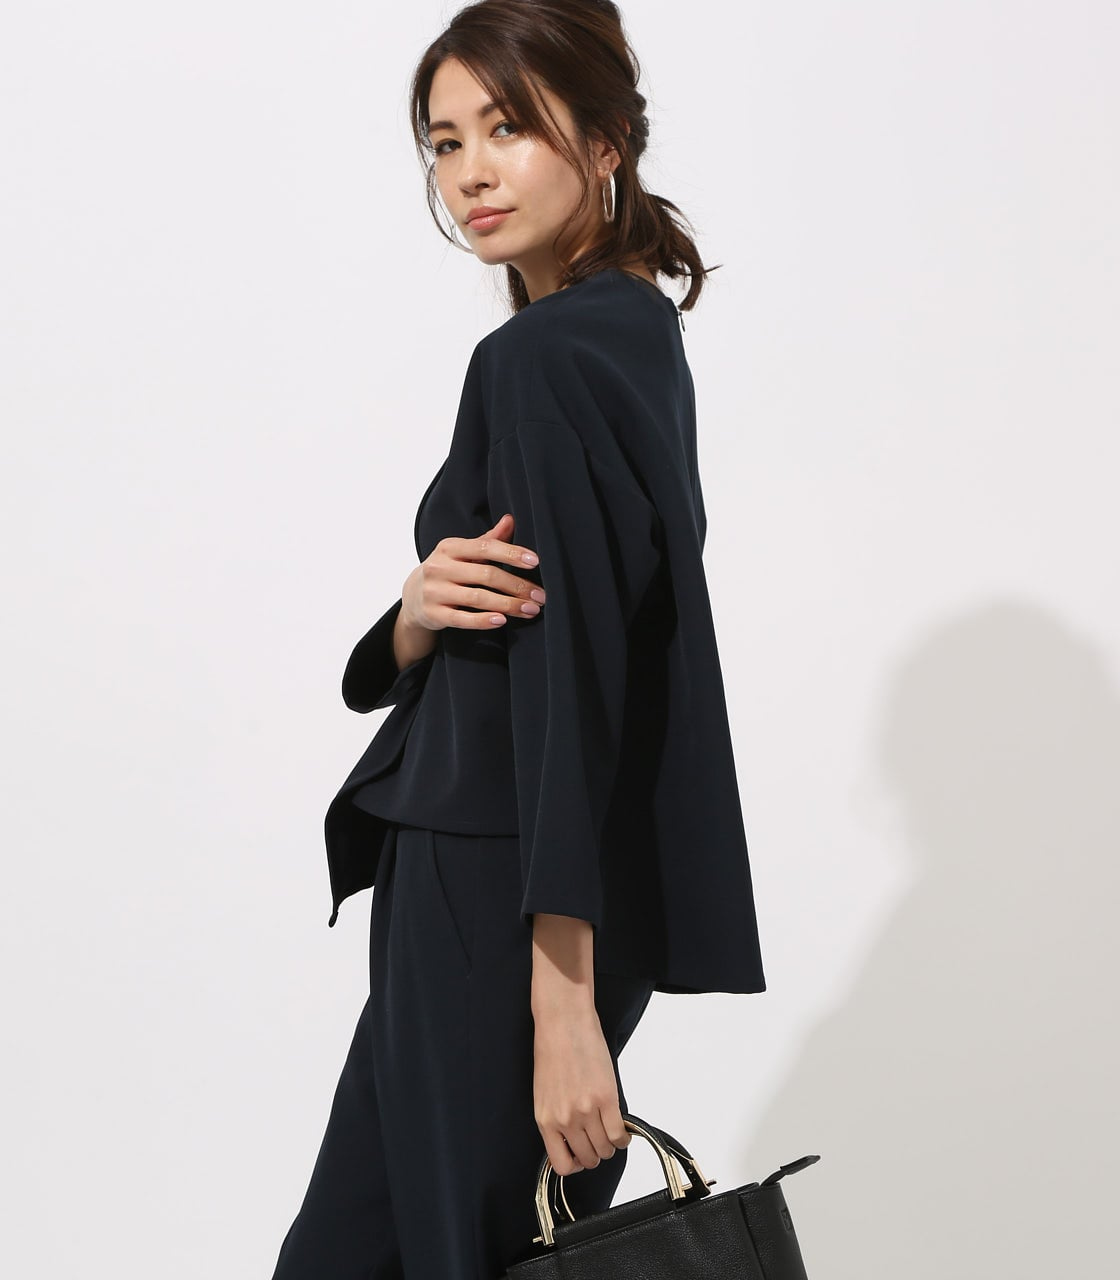 【AZUL BY MOUSSY】LAYERED IRREGULAR HEM TOPS 詳細画像 NVY 2